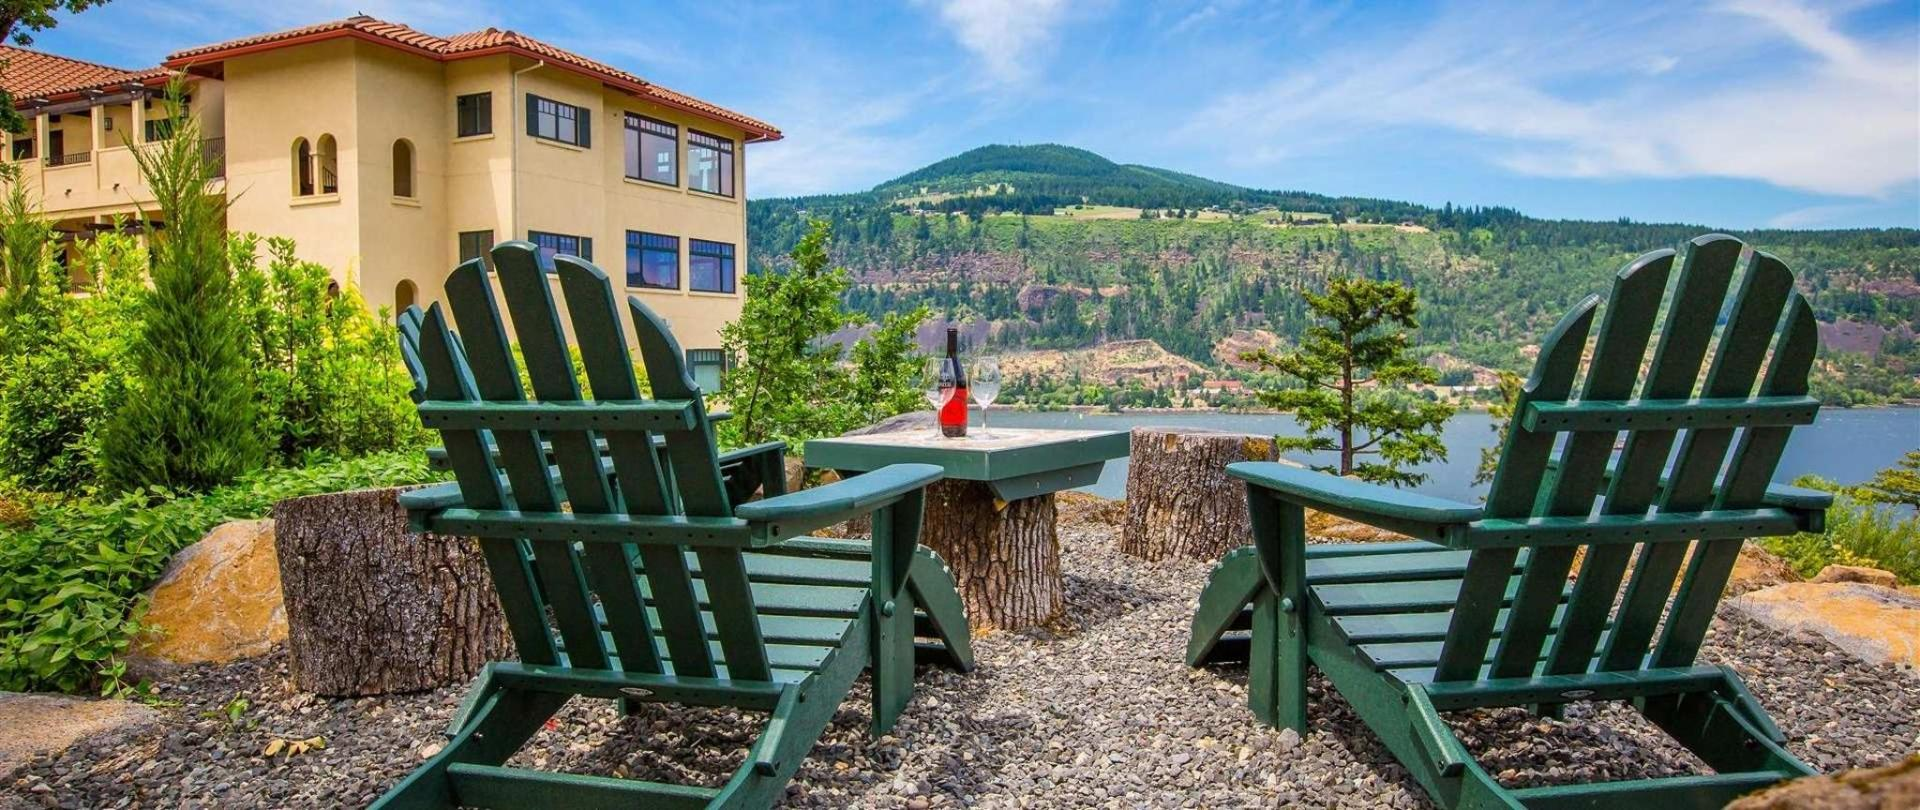 Columbia Cliff Villas Luxury Hood River Gorge Hotel United States Of America